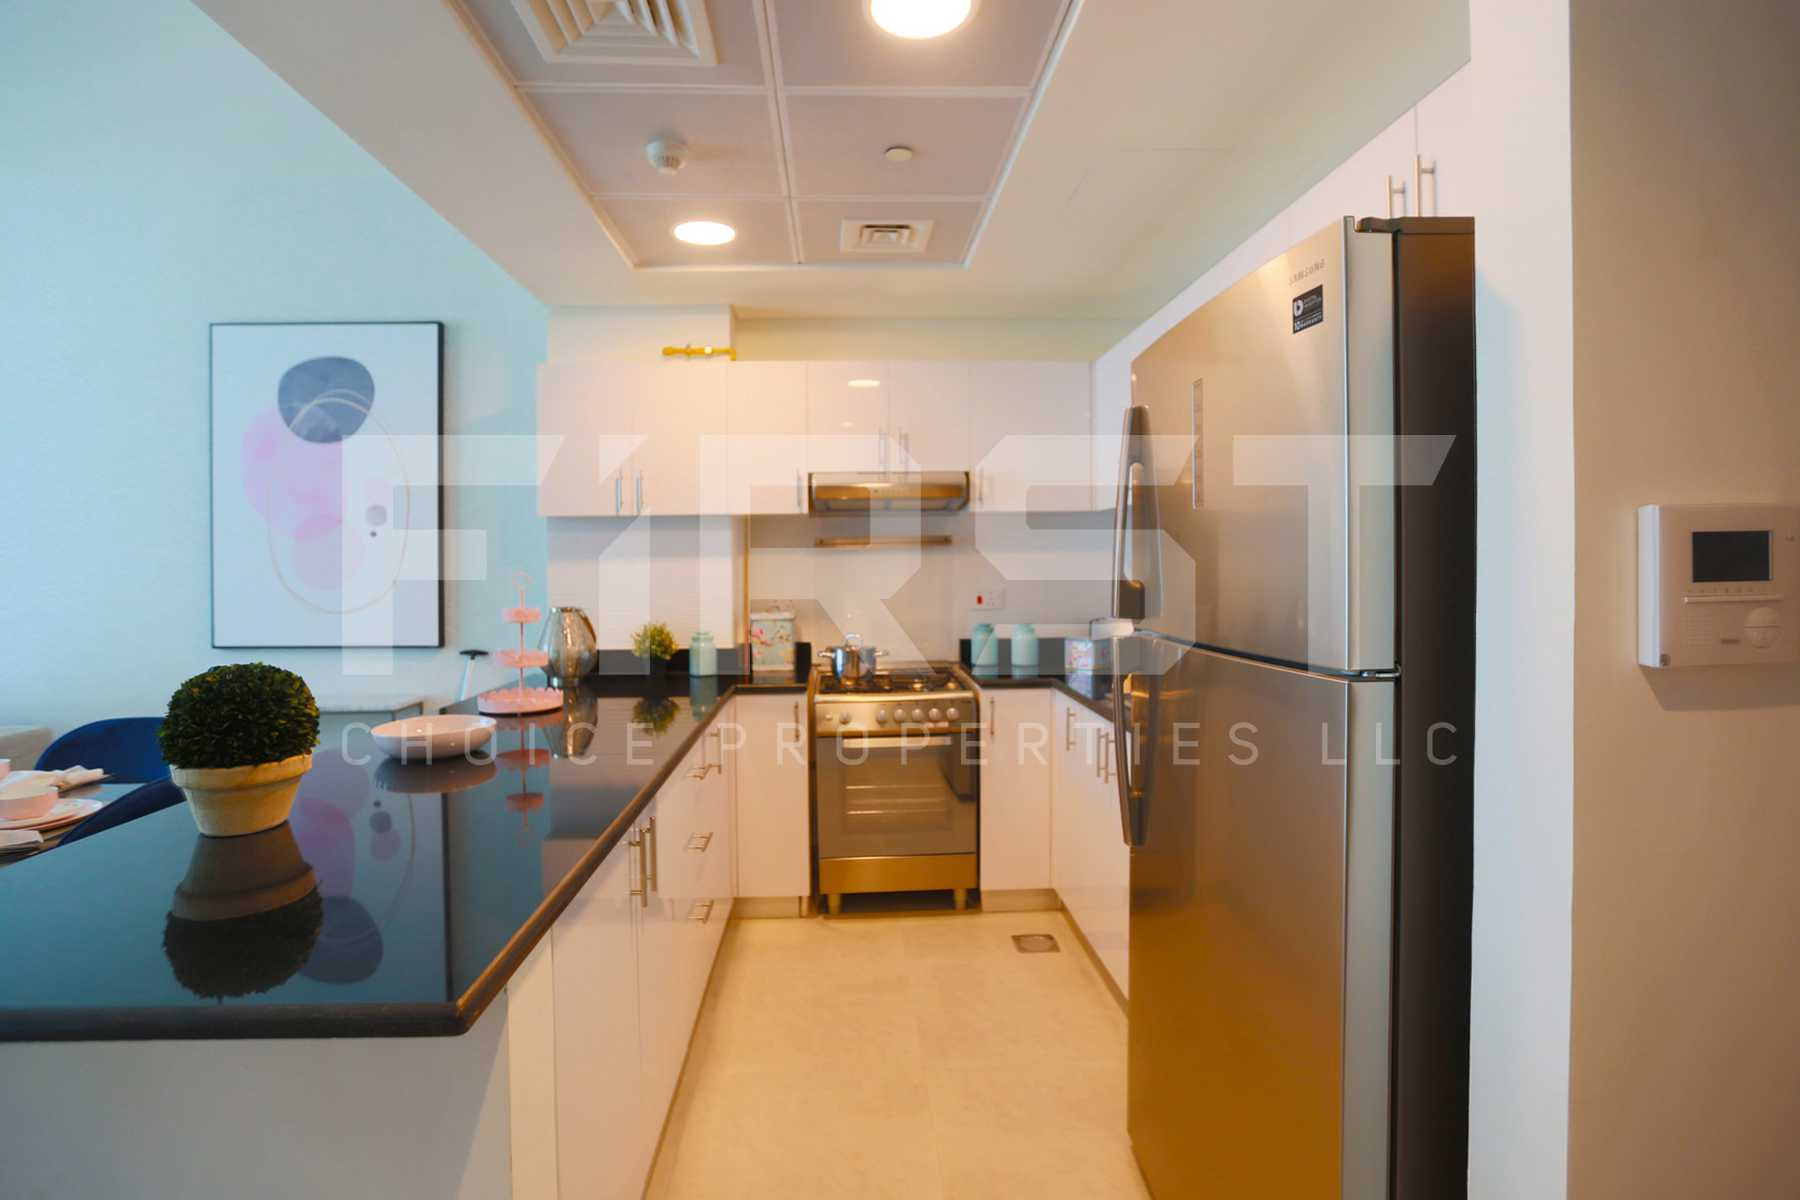 Internal of 1 Bedroom Apartment in Park view Saadiyat Ilsand Abu Dhabi UAE (7).jpg